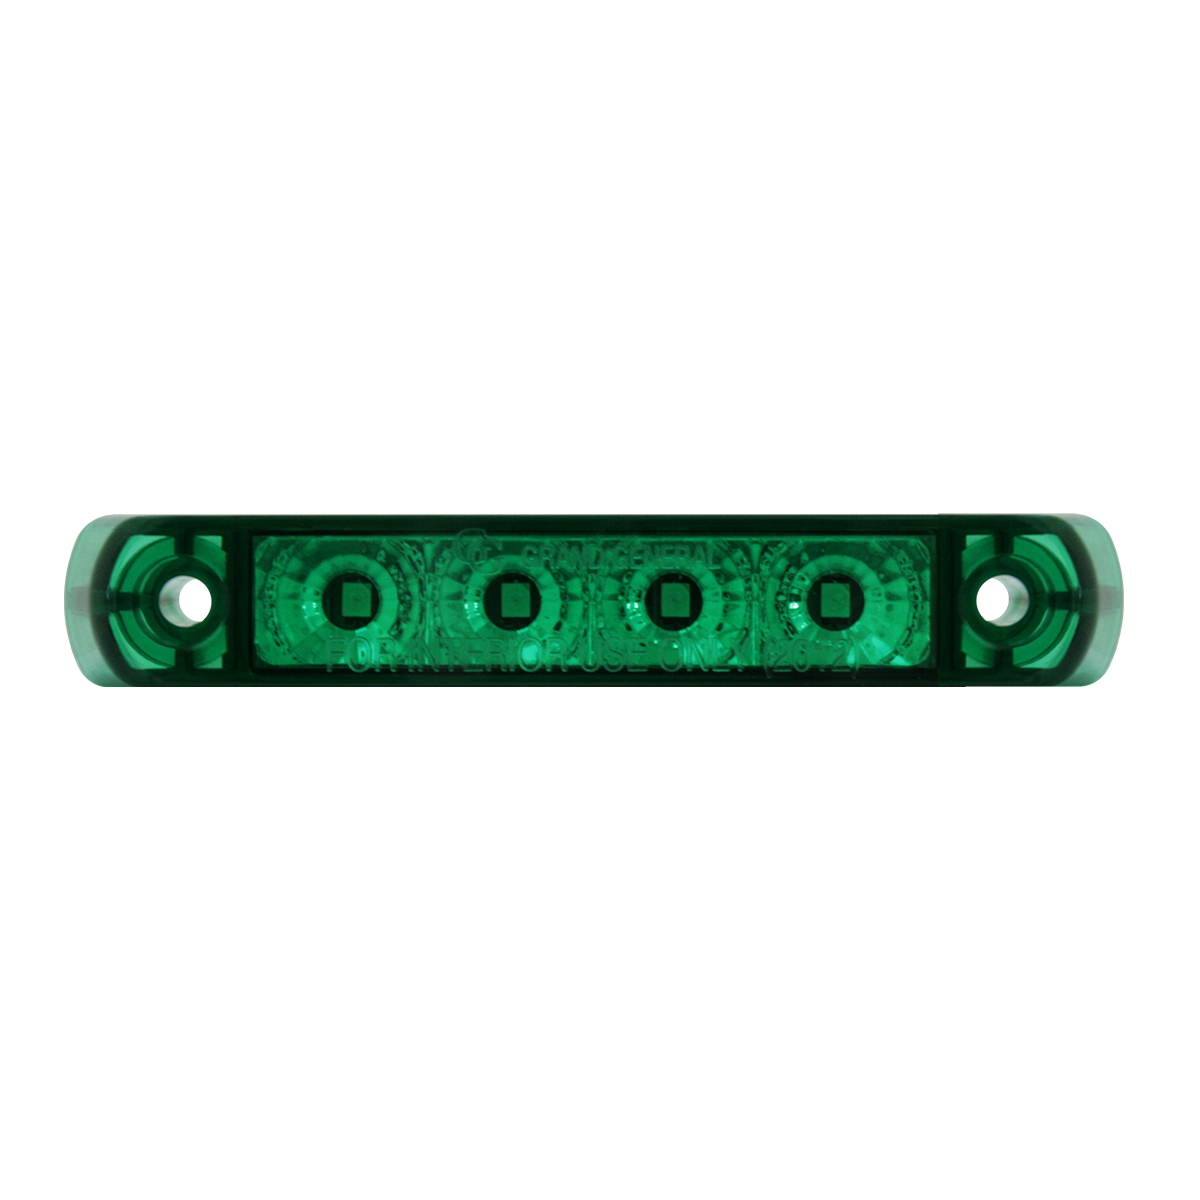 76086 Surface Mount Dual Function LED Light in Green/Green